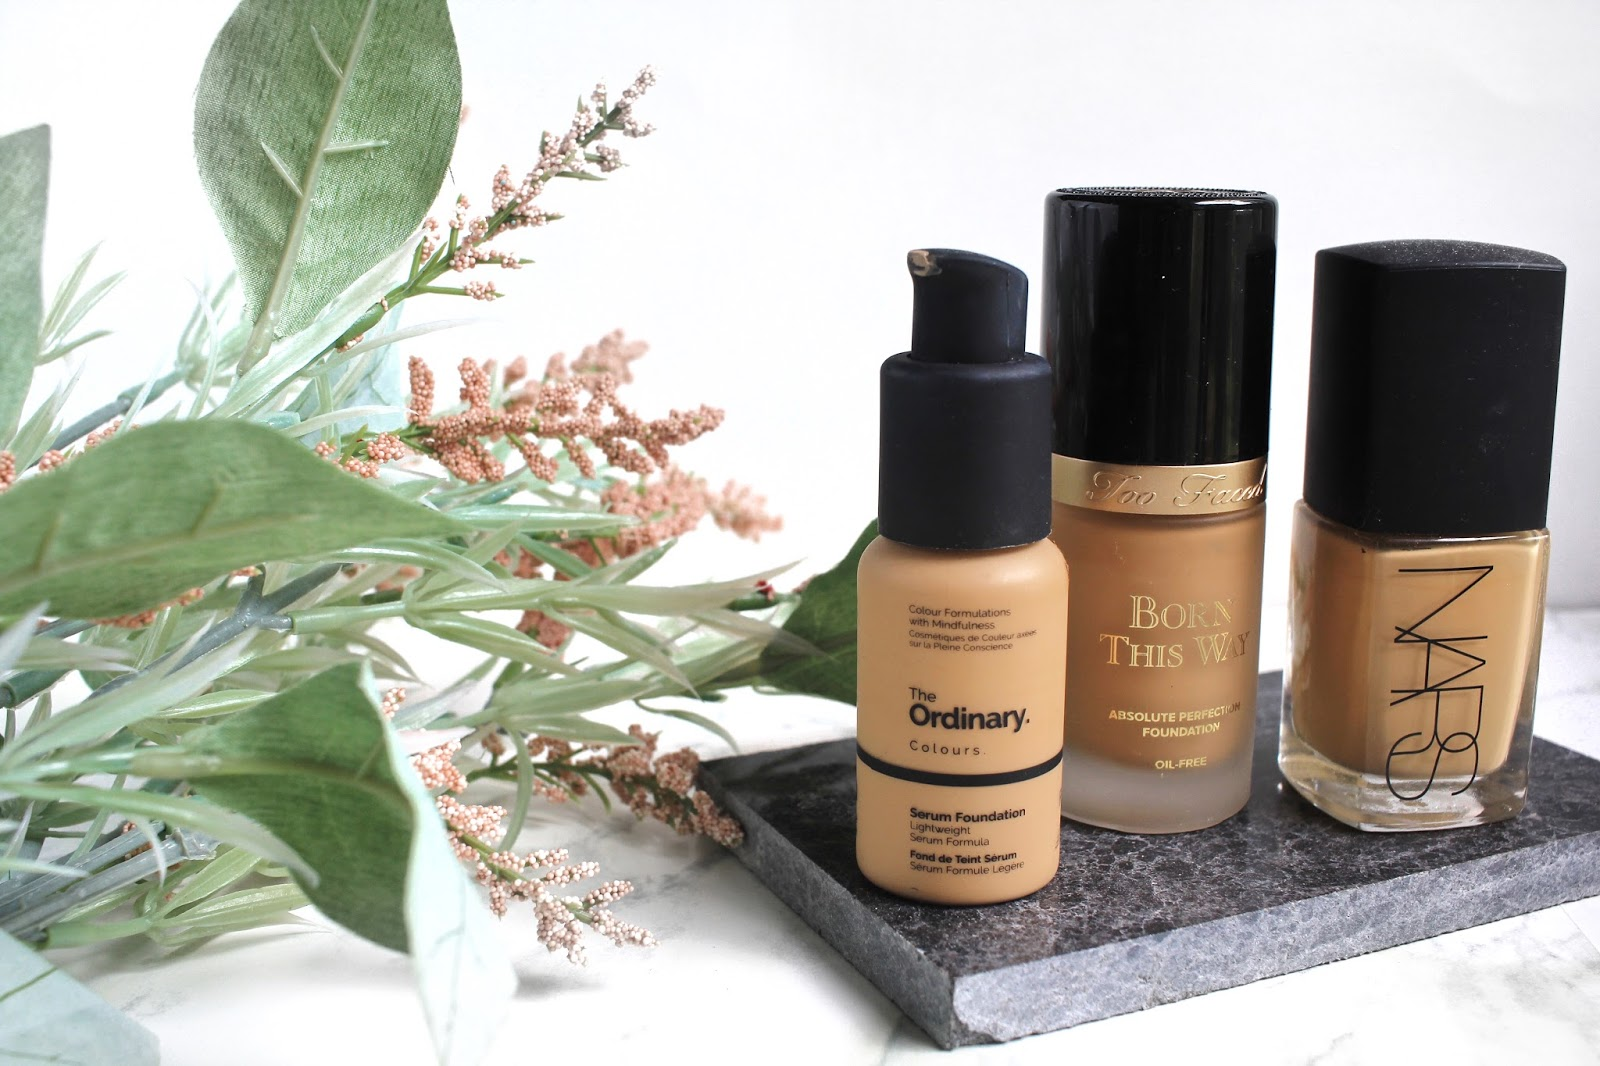 Transitional Foundation Picks   Autumn Edit ft. The Ordinary, Too Faced, Nars